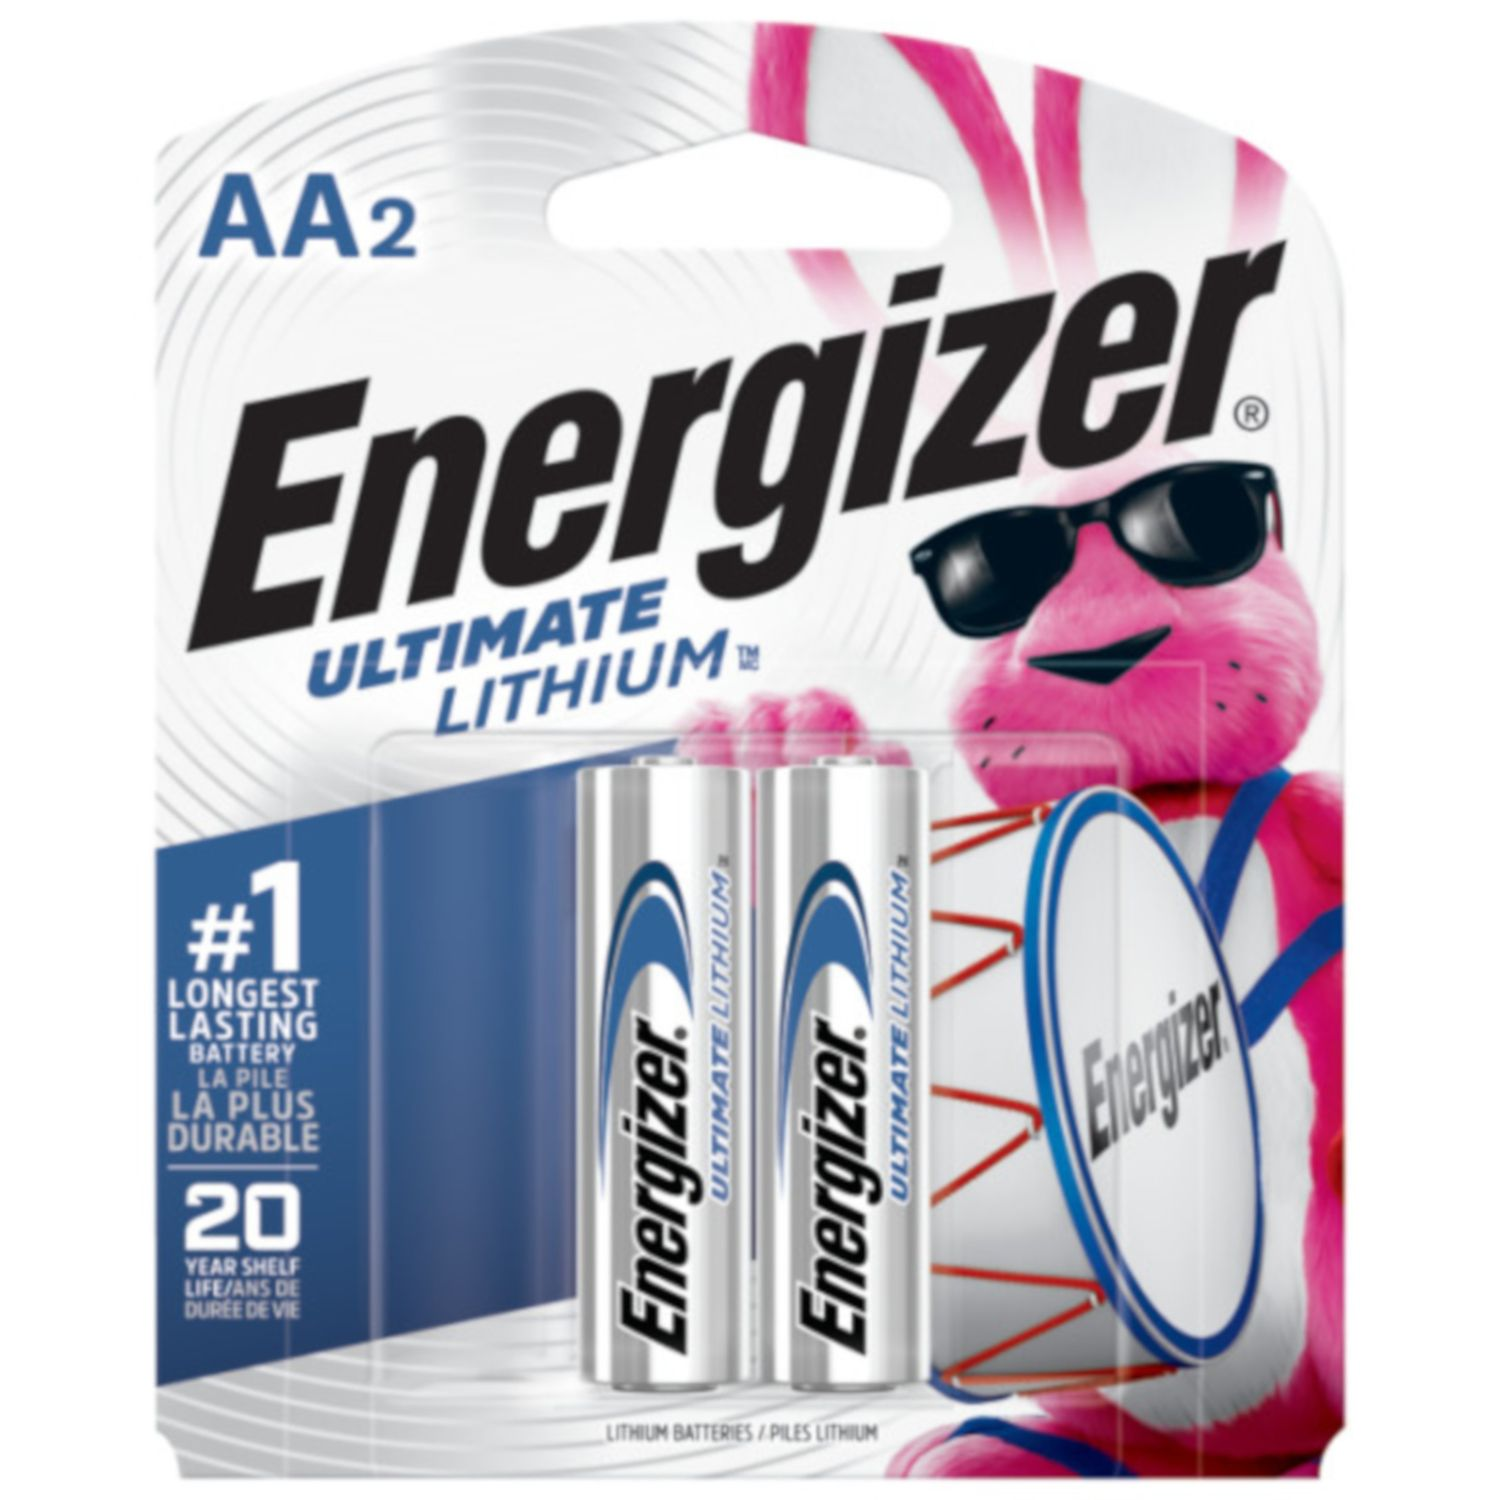 Energizer Ultimate Lithium Aa Camera Battery L91bp 2 2 Pk In 2021 Energizer Energizer Battery Lithium Battery